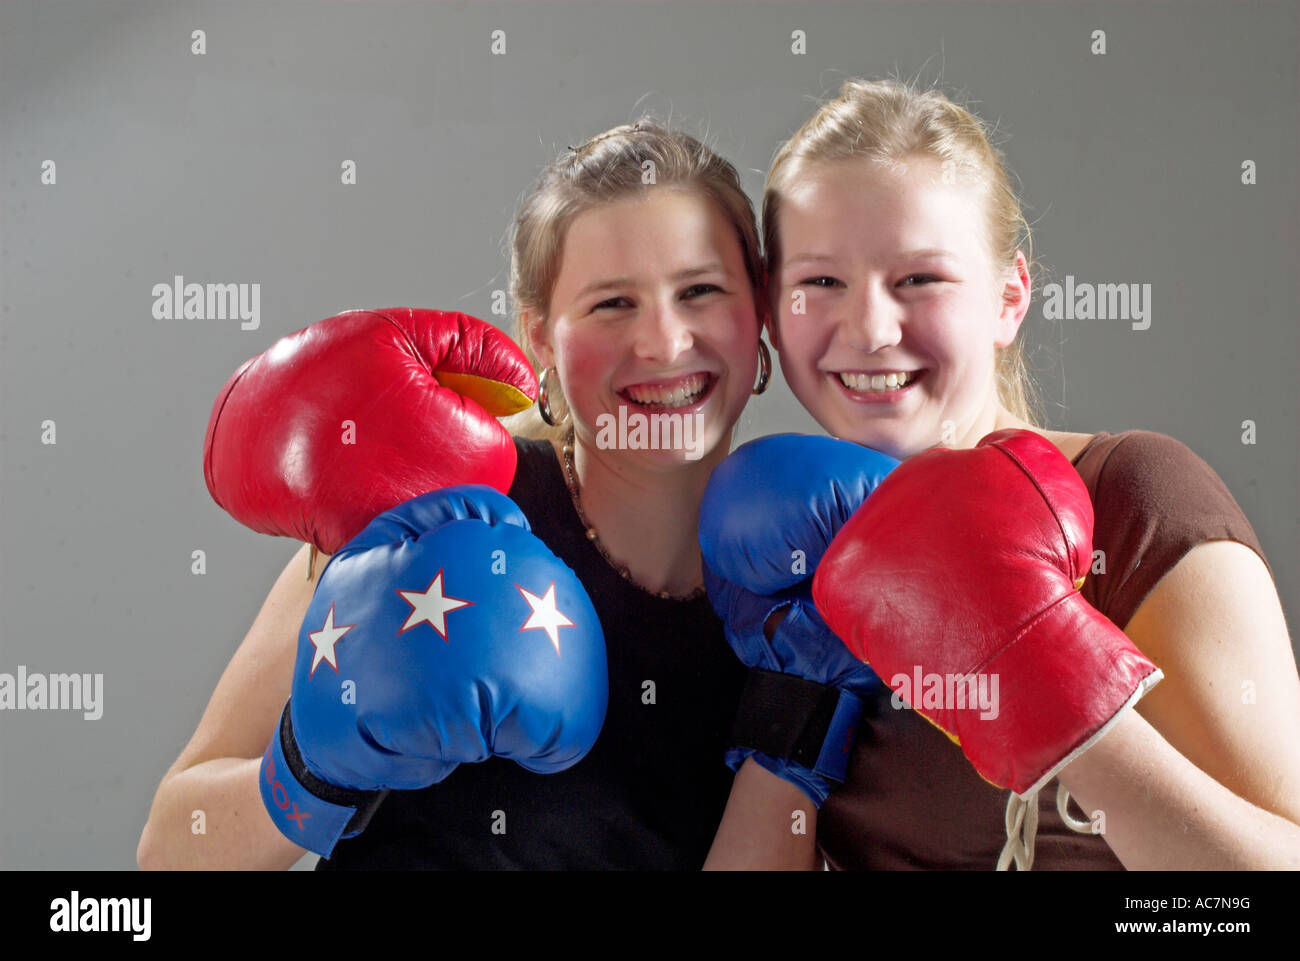 junge maedchen boxen young girls boxing stock photo royalty free image 13068603 alamy. Black Bedroom Furniture Sets. Home Design Ideas